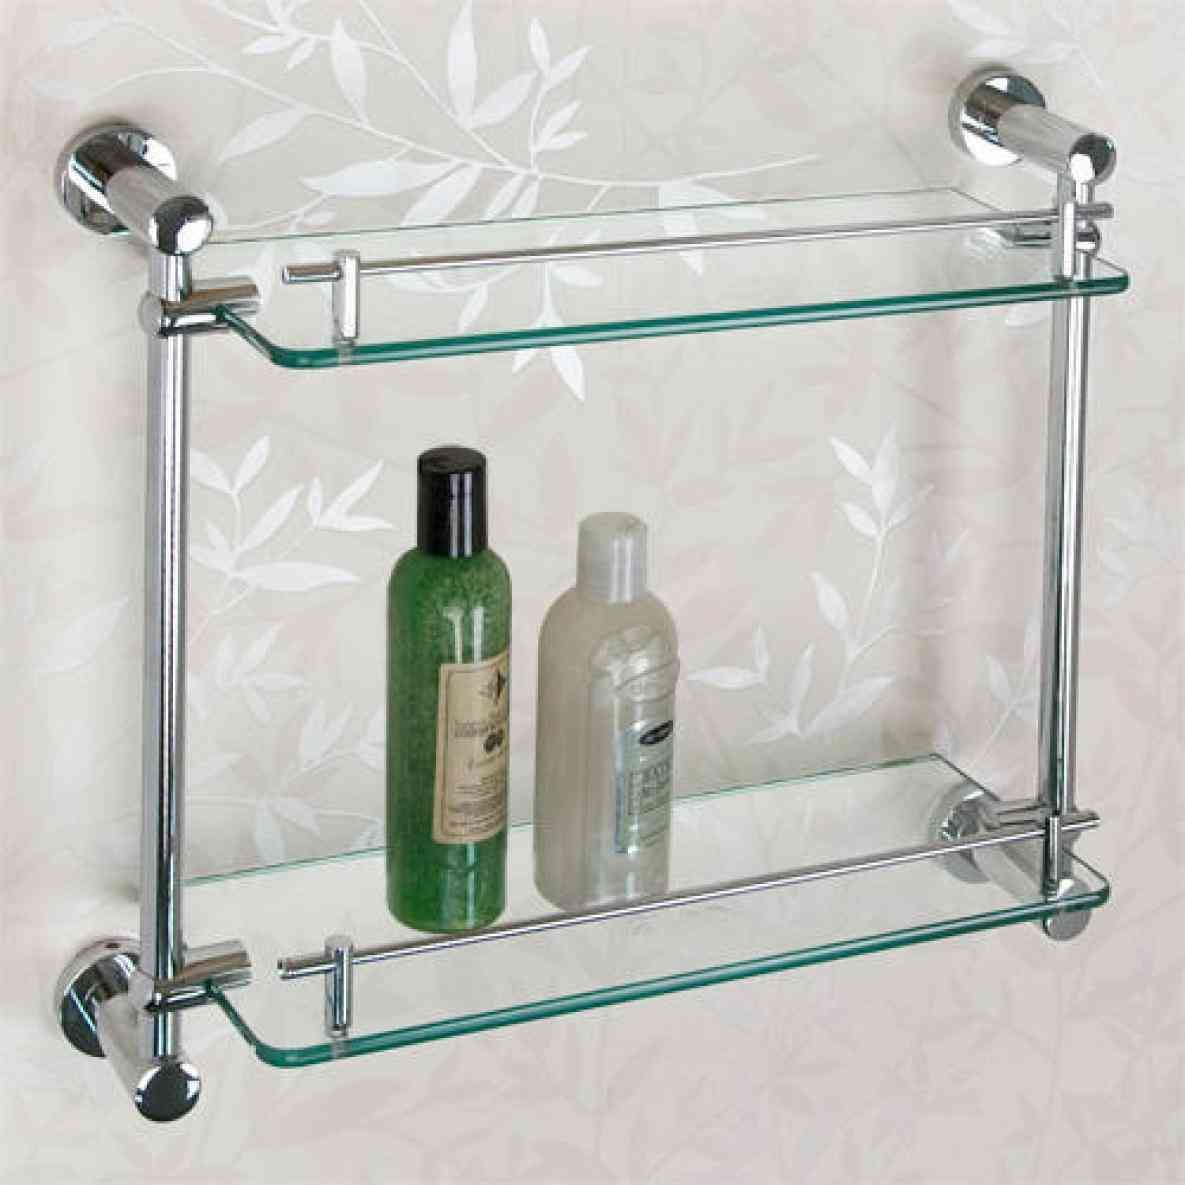 New Post brushed nickel bathroom shelving unit | LivingRooms ...